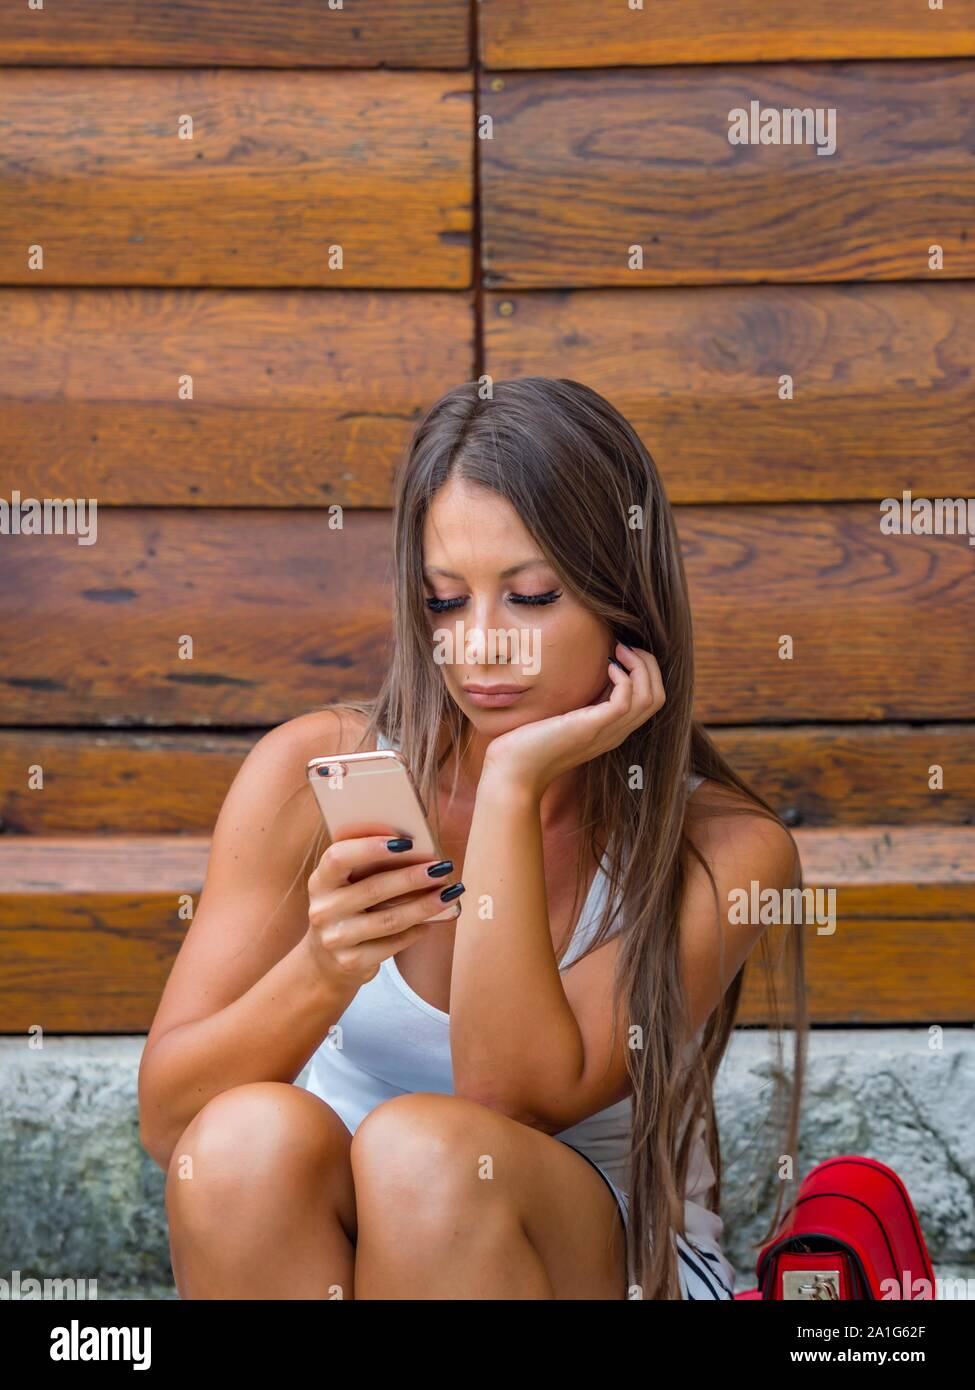 Looking at cellphone smartphone reading facebook sitting on entrance porch doorstep before wooden doors door communicate communicating message Stock Photo